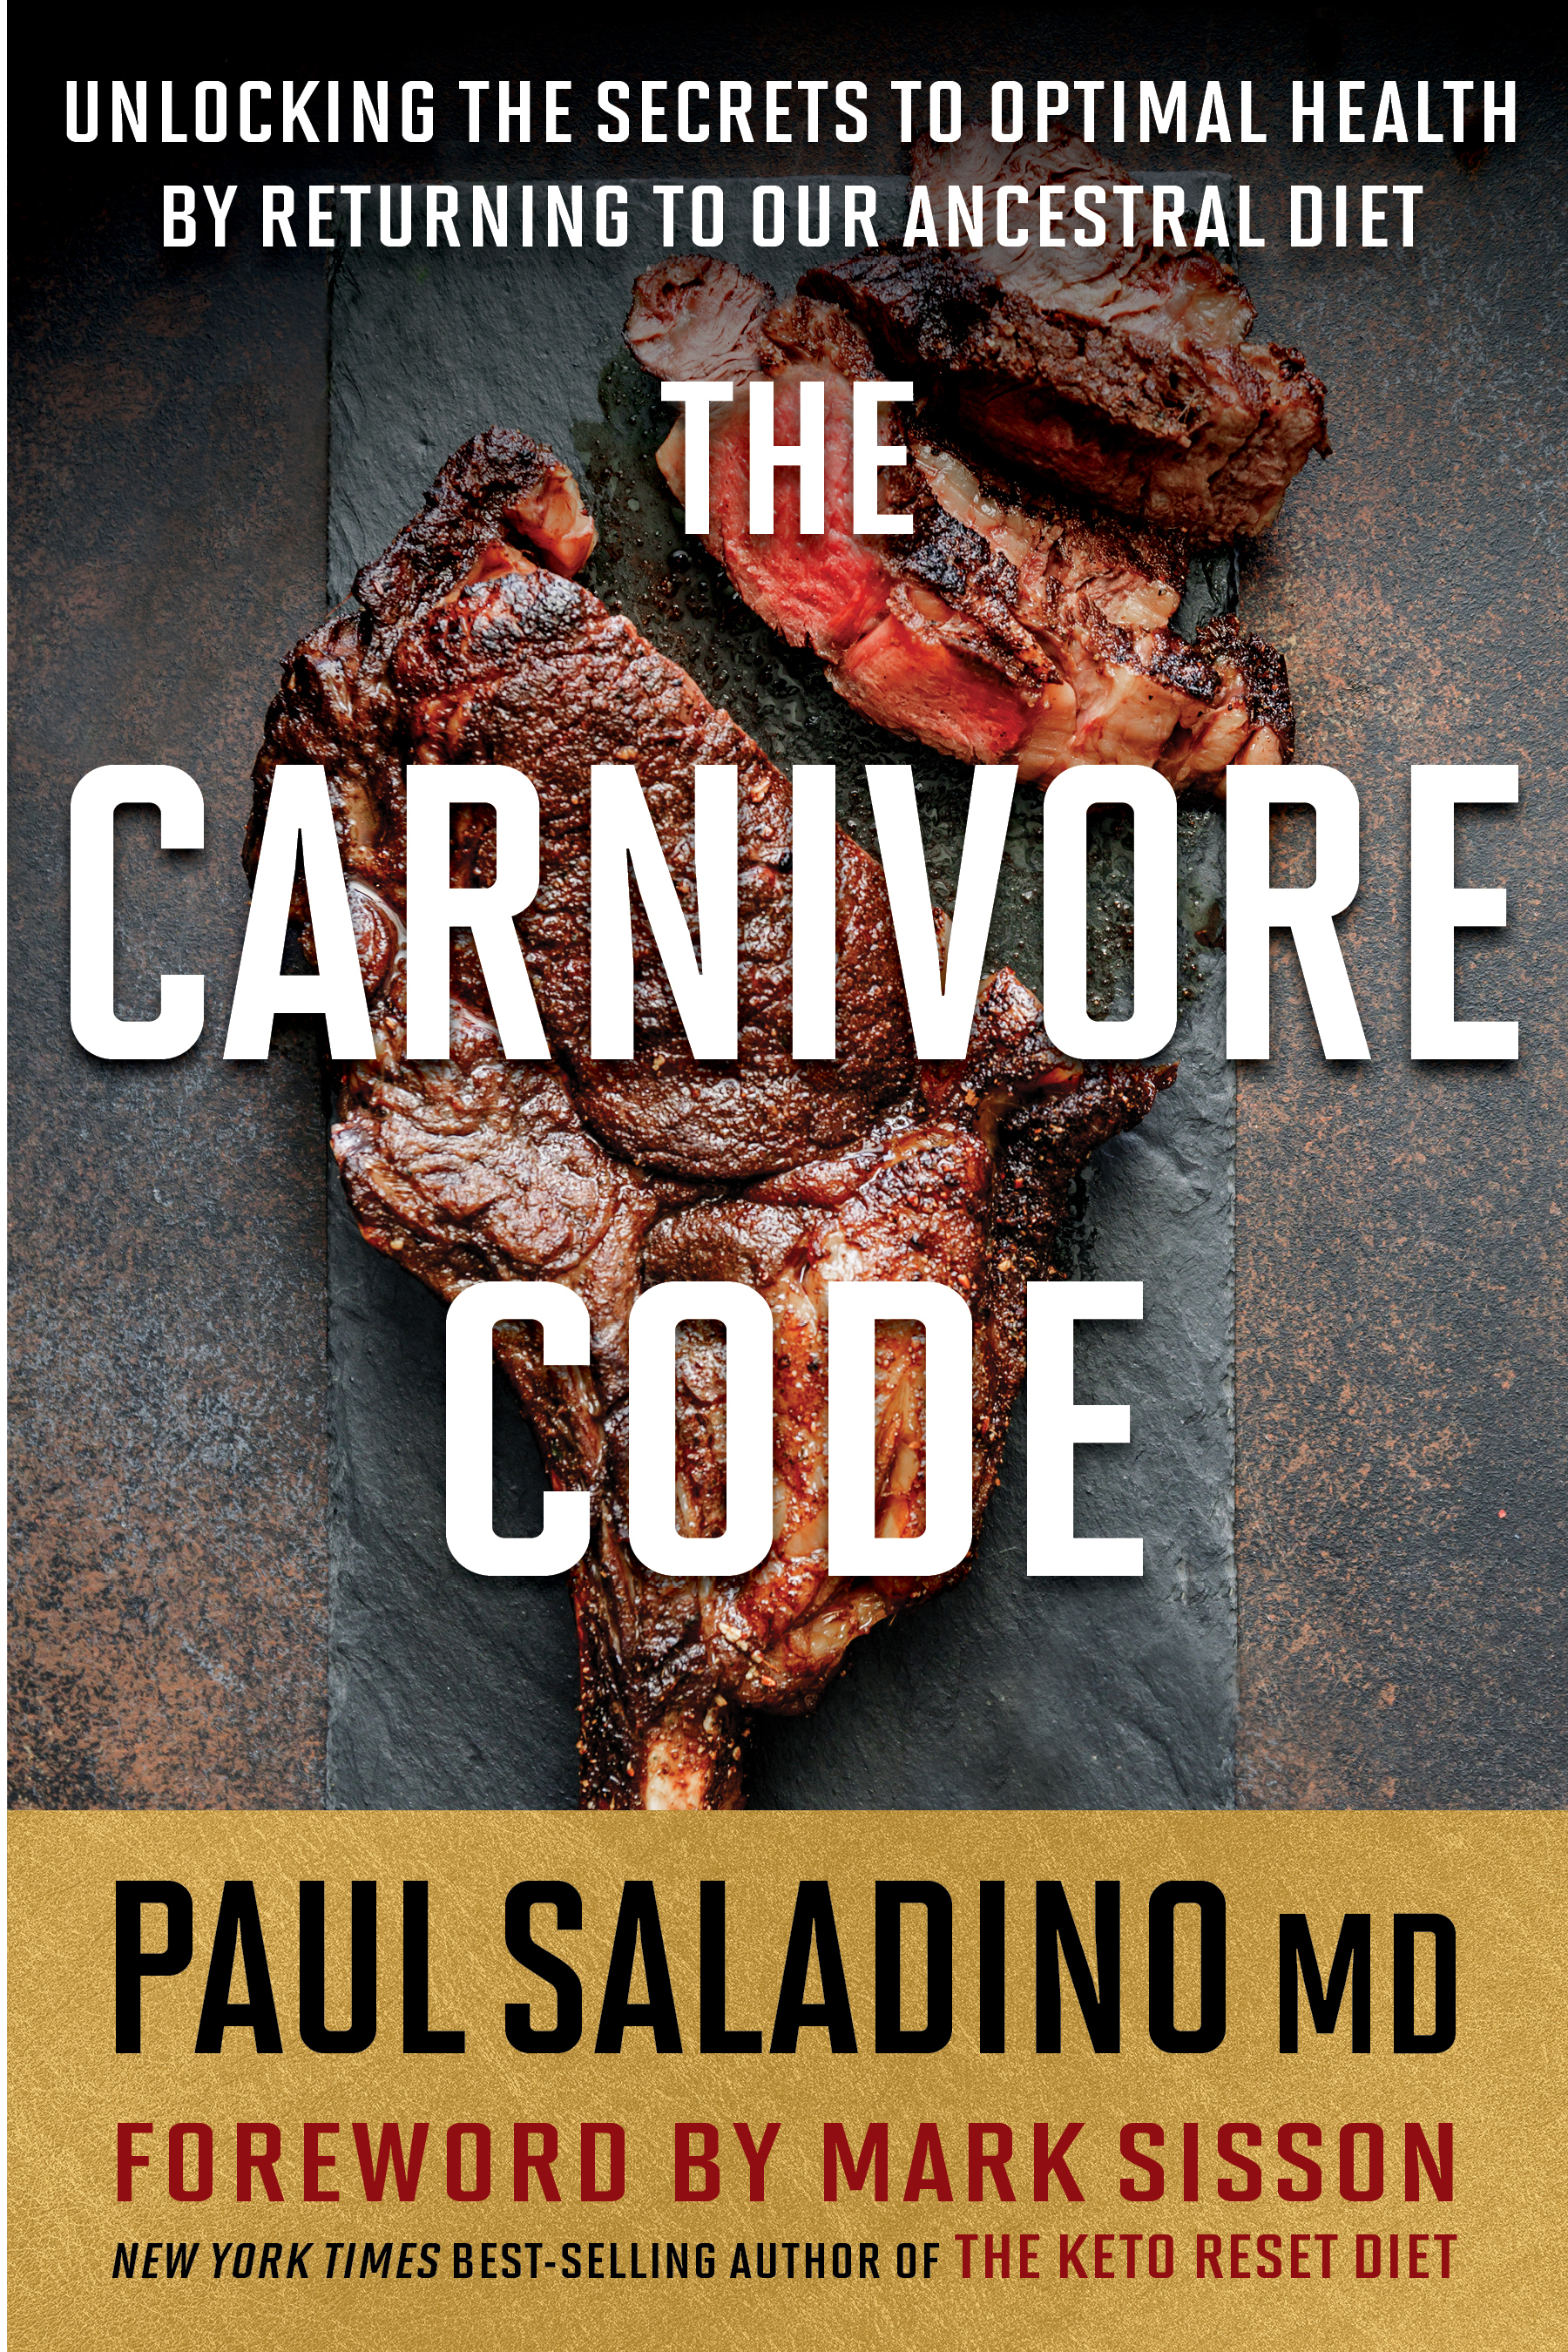 The Carnivore Code: Unlocking the Secrets to Optimal Health by Returning to Our Ancestral Diet